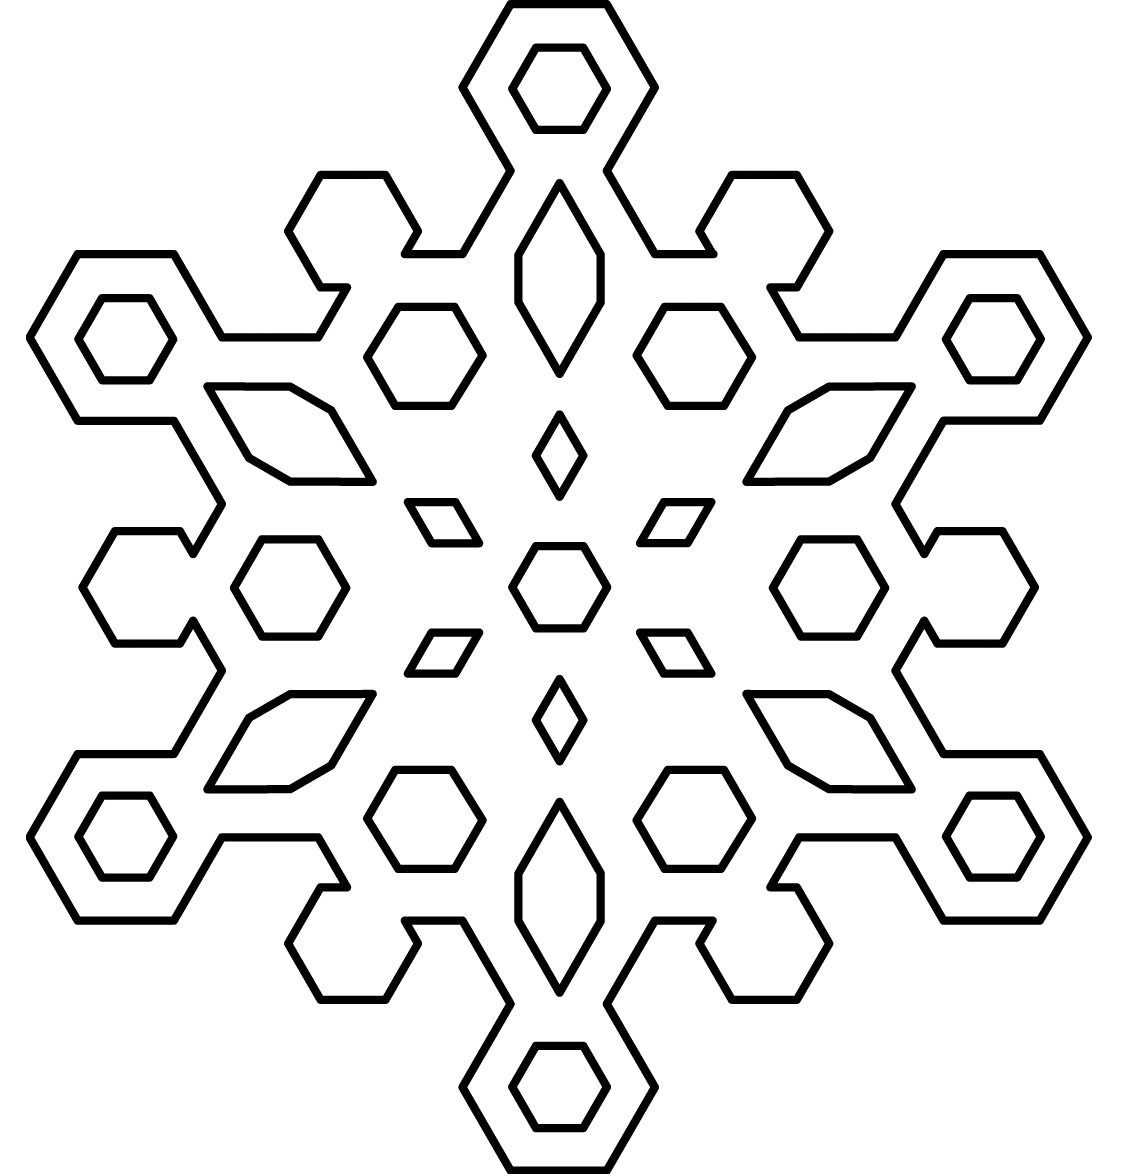 coloring pages of snowflakes - Snowflake Coloring Page